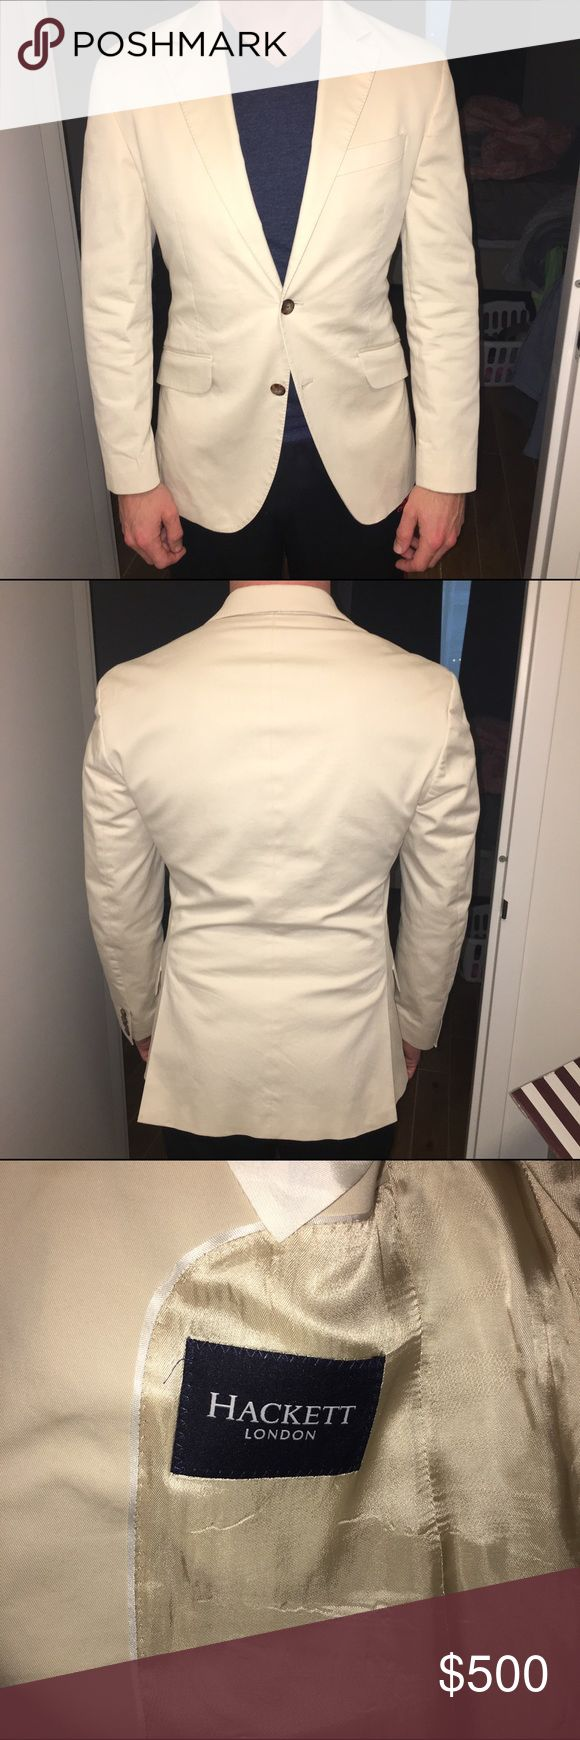 "Hackett London Blazer. Size 38R Hackett London Blazer. Size 38R. Cream/Beige color. Cotton Blazer. Purchased at Regent Street Flagship store in London. Like New. Worn three times. In amazing condition. Blazer was tailored to have a slim look. 5'9"" and 160 lbs. Hackett Suits & Blazers Sport Coats & Blazers"